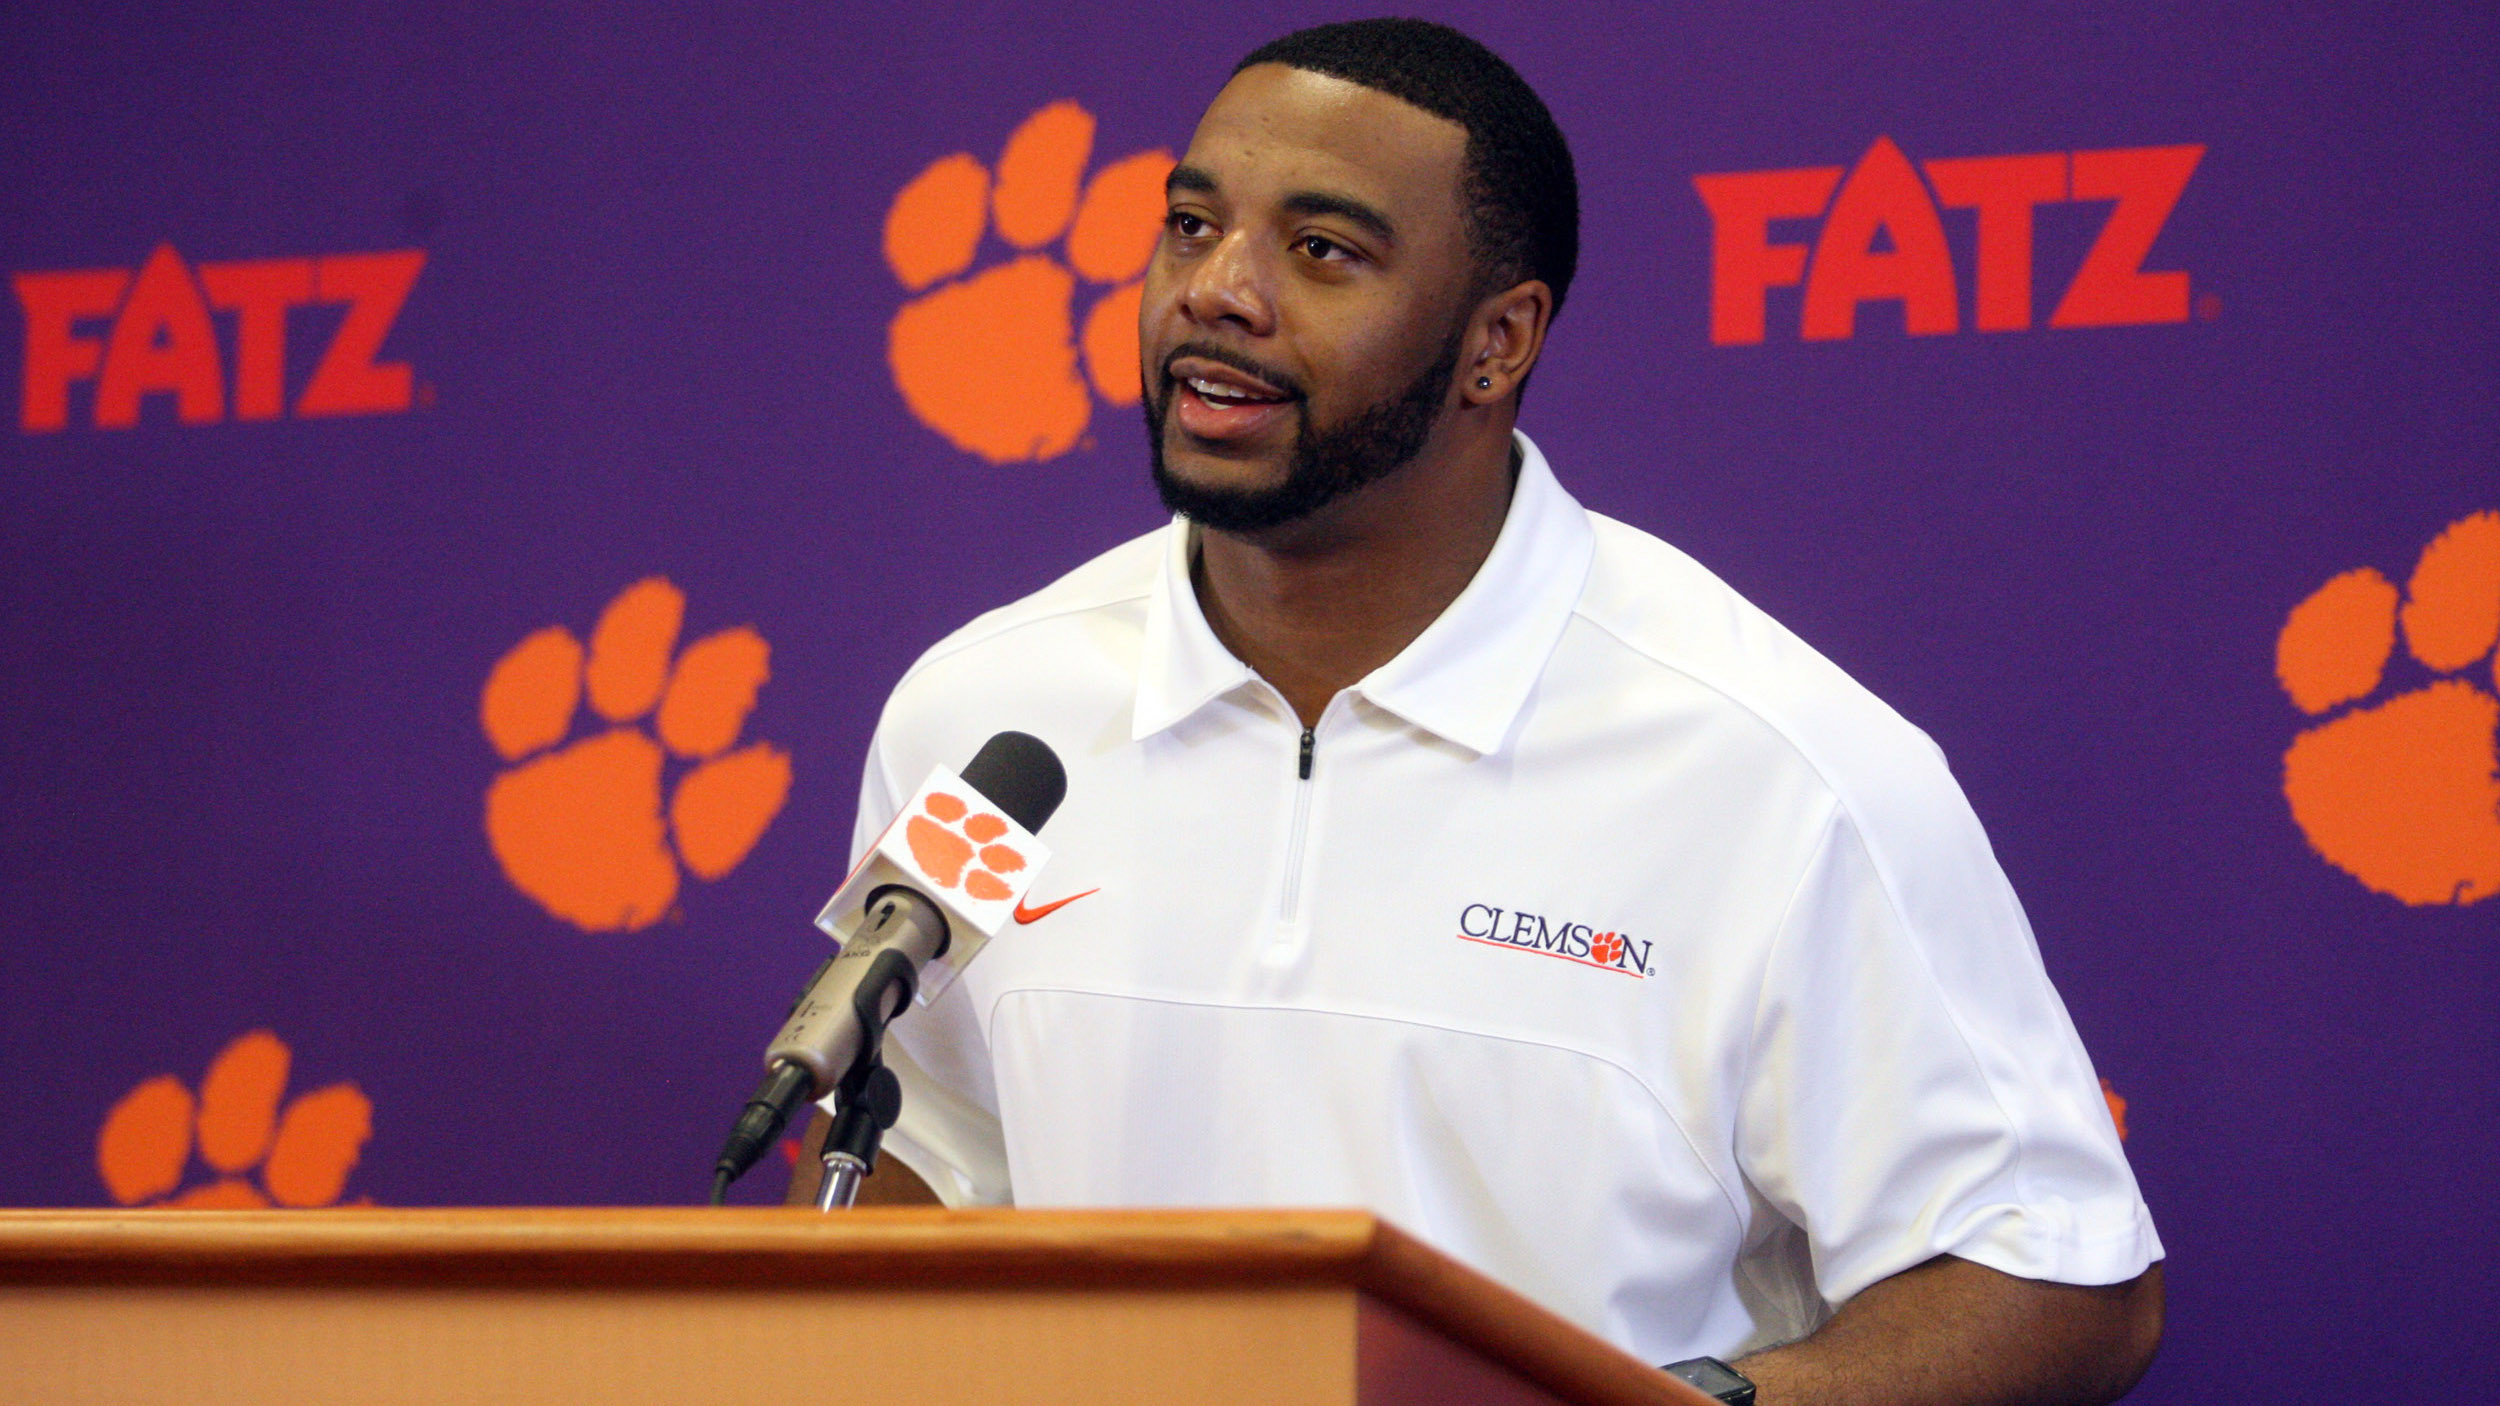 Boyd to Return for Senior Year at Clemson